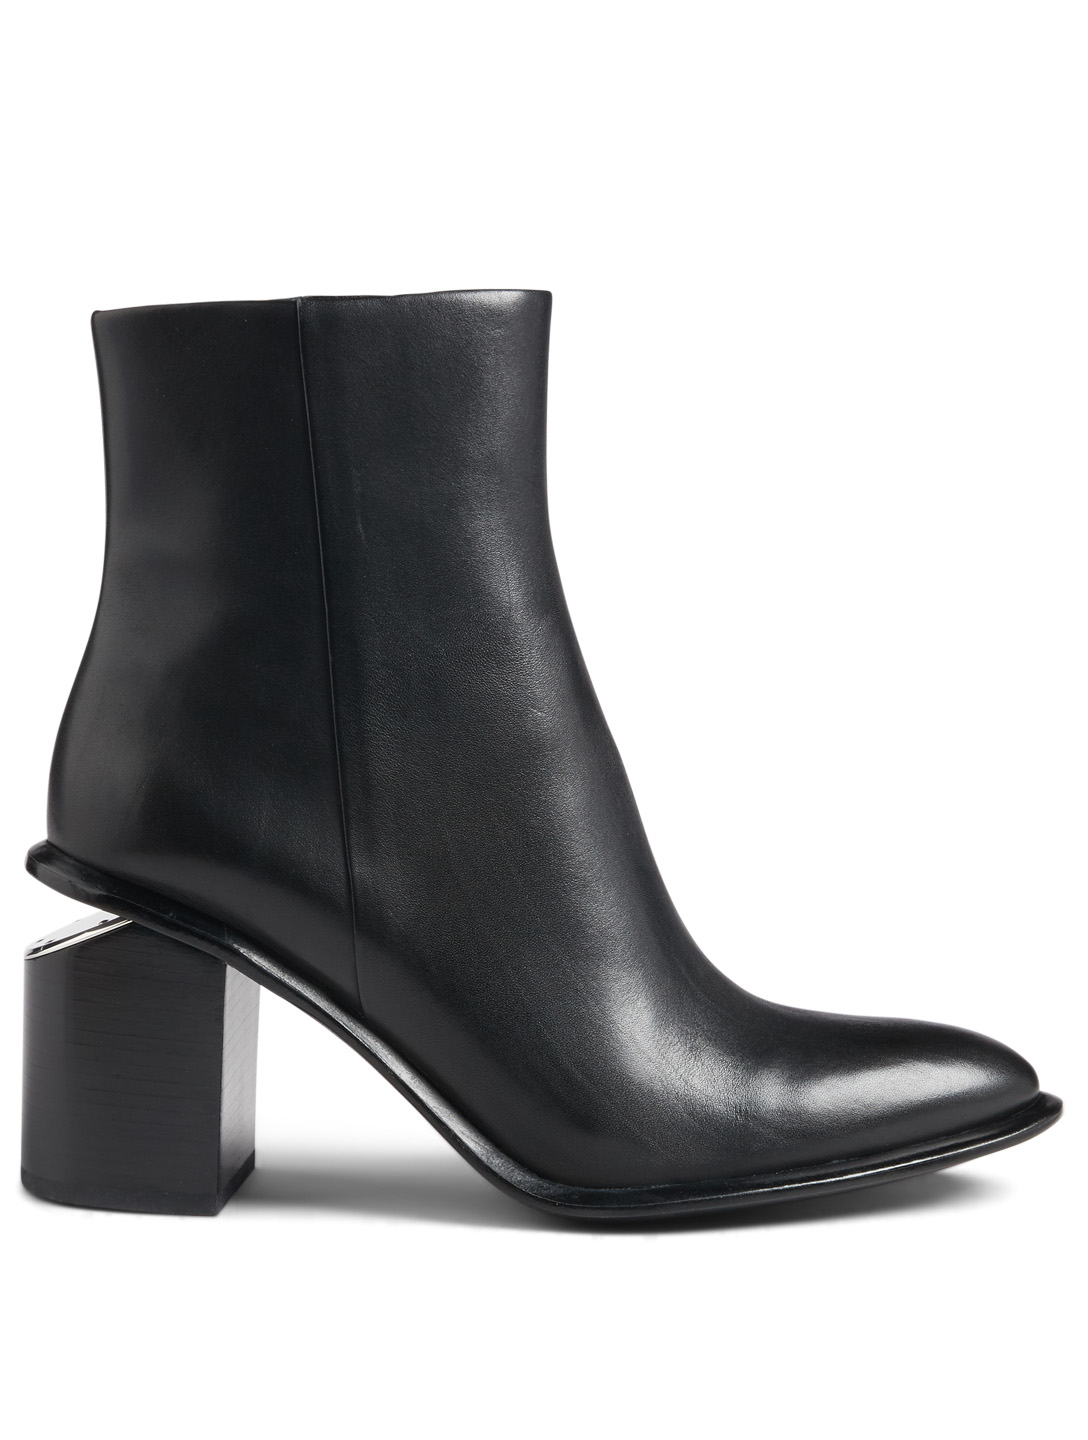 80c286f12b562d ALEXANDER WANG Anna Leather Ankle Boots